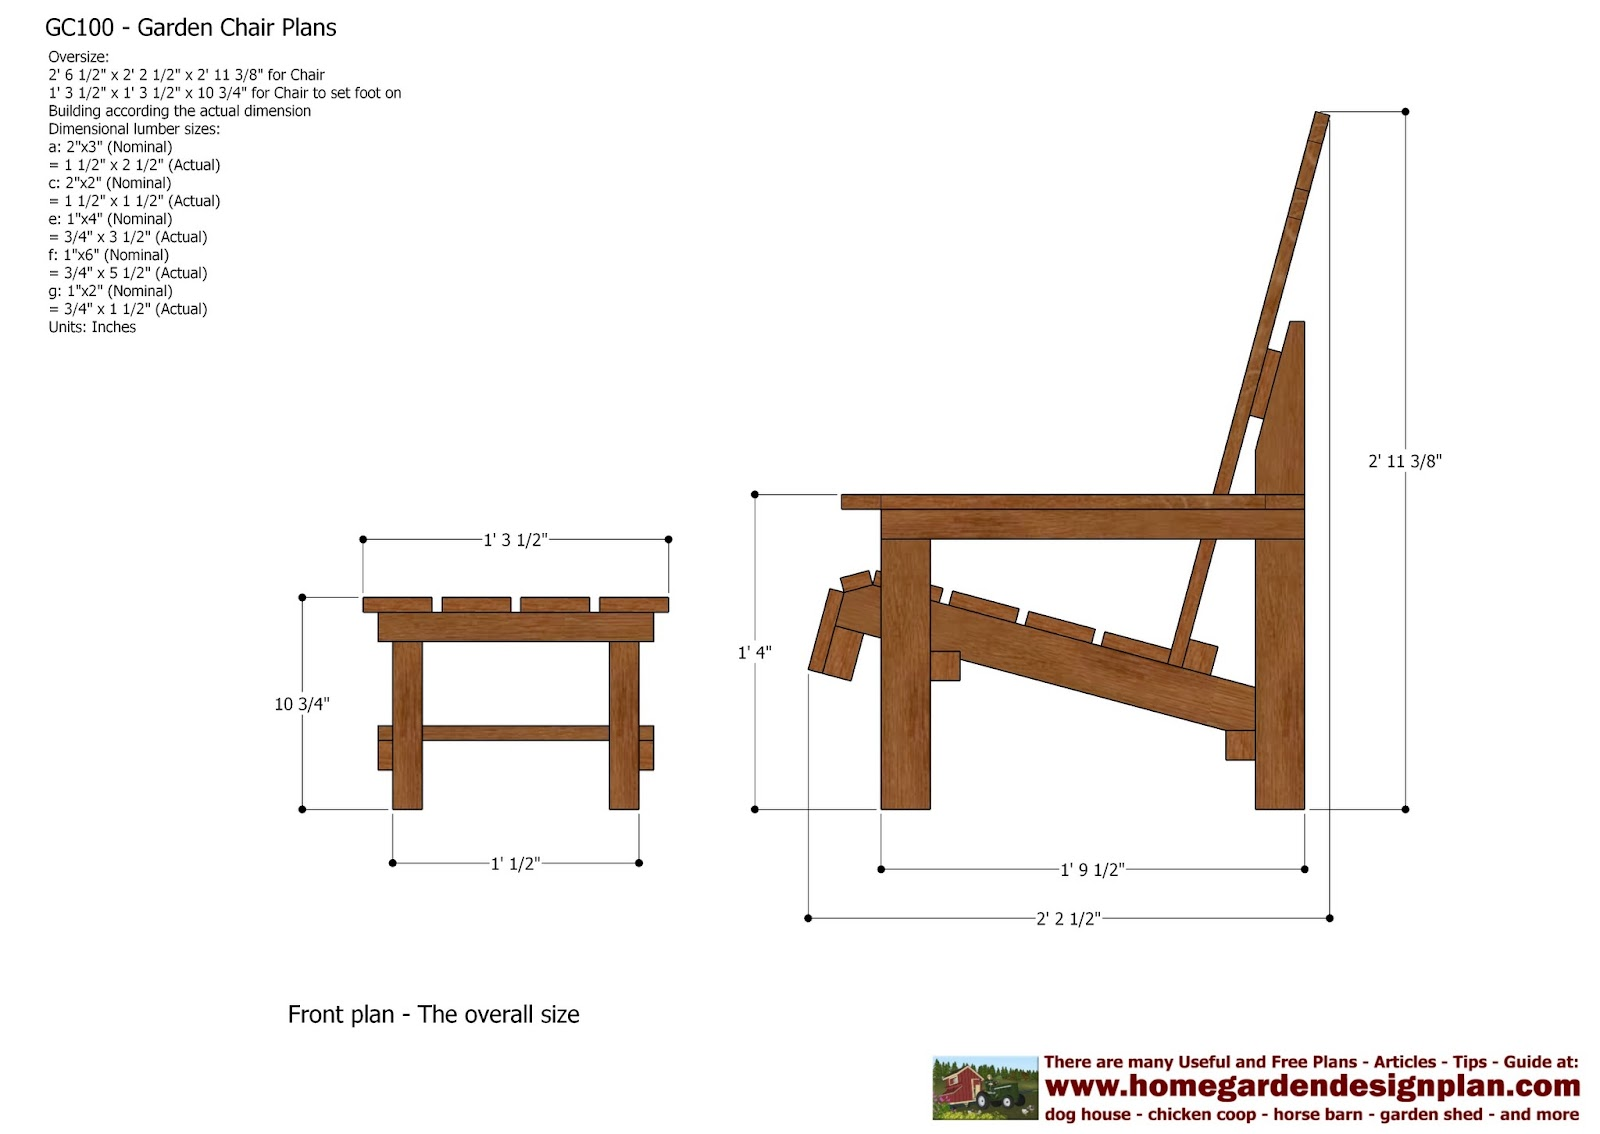 Woodwork garden chair plans pdf plans for Free outdoor furniture plans pdf